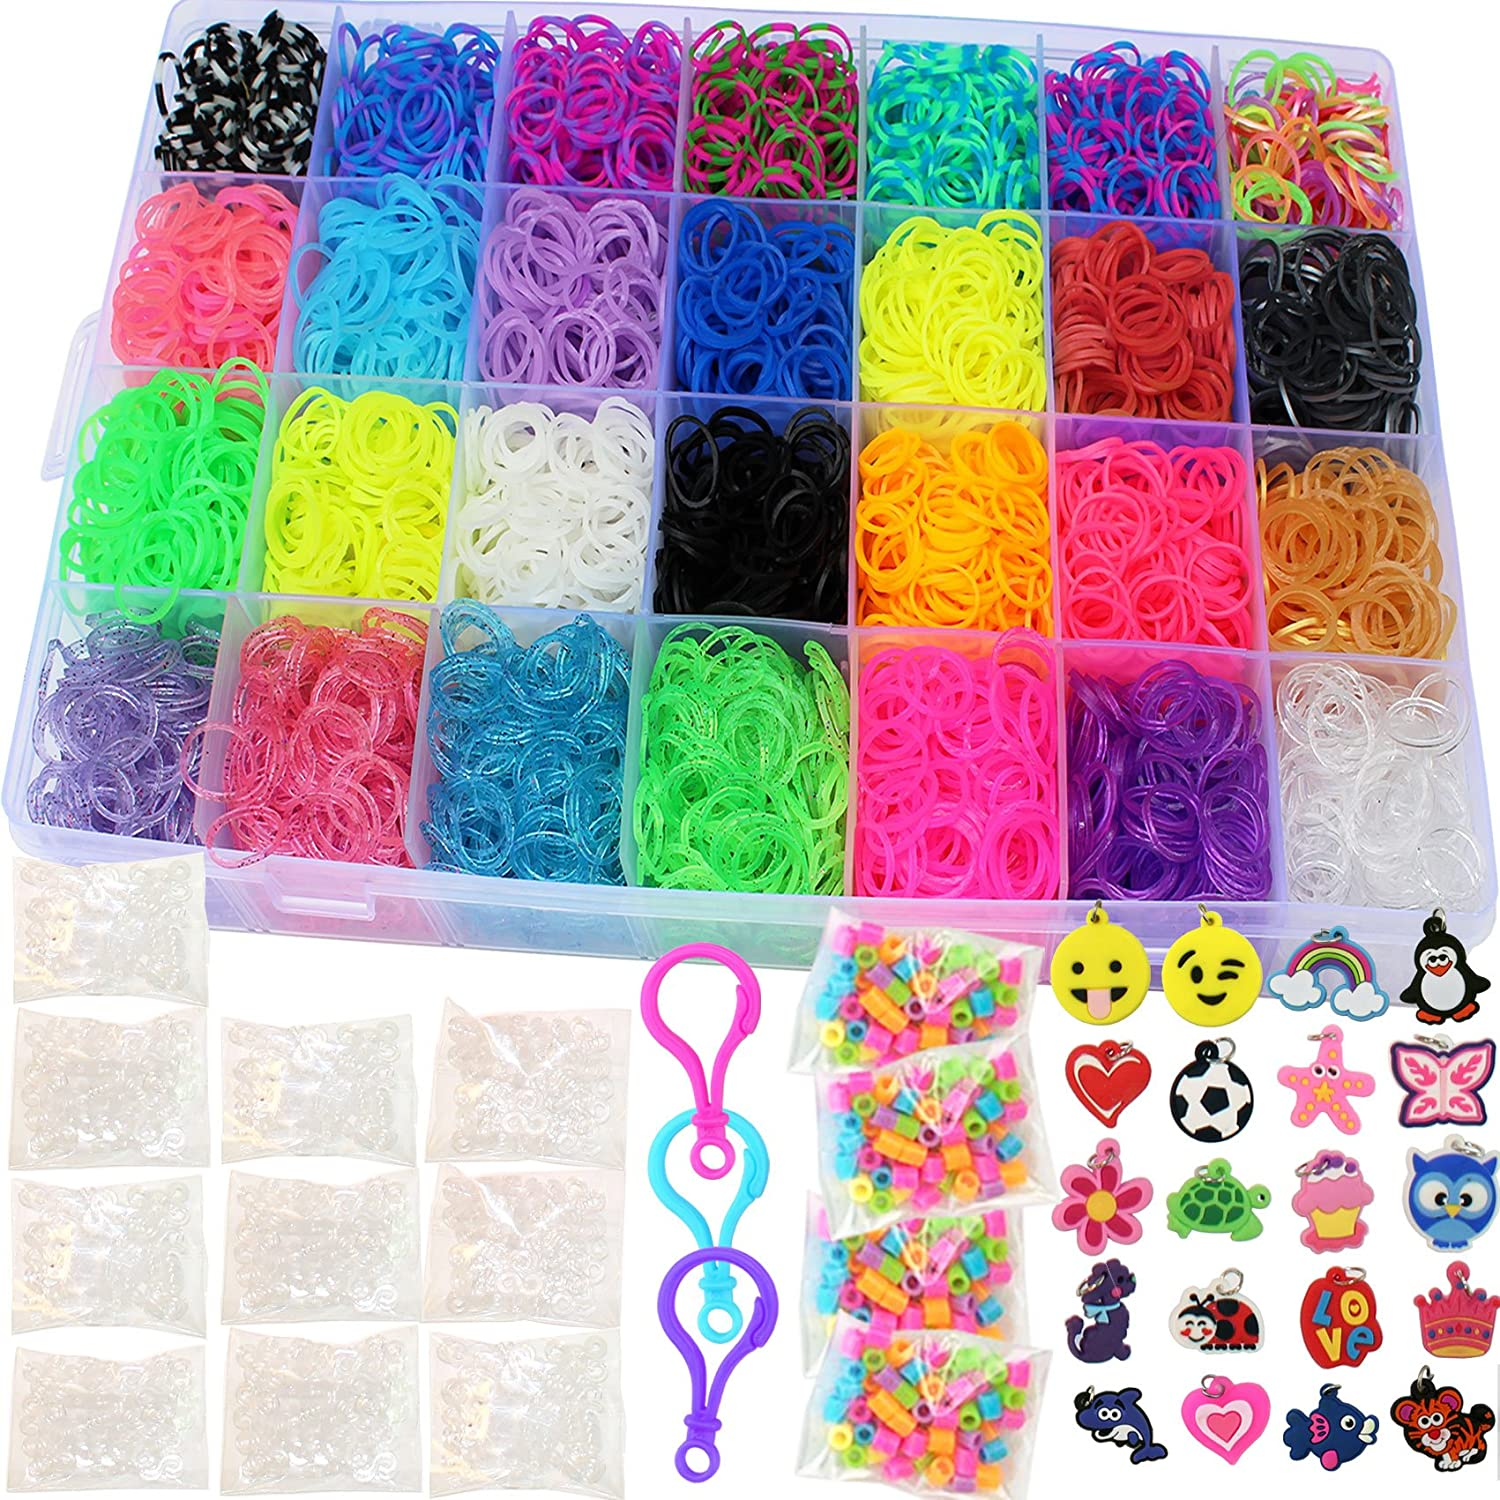 11,600+ Authentic Rainbow Mega Refill Loom by Talented Kidz: Includes 10,750 Premium Quality Rubber Bands, 3 Exclusive Backpack Hooks, 30 Charms, 235 Beads, 550 Clips, Organizer & More. Best Value